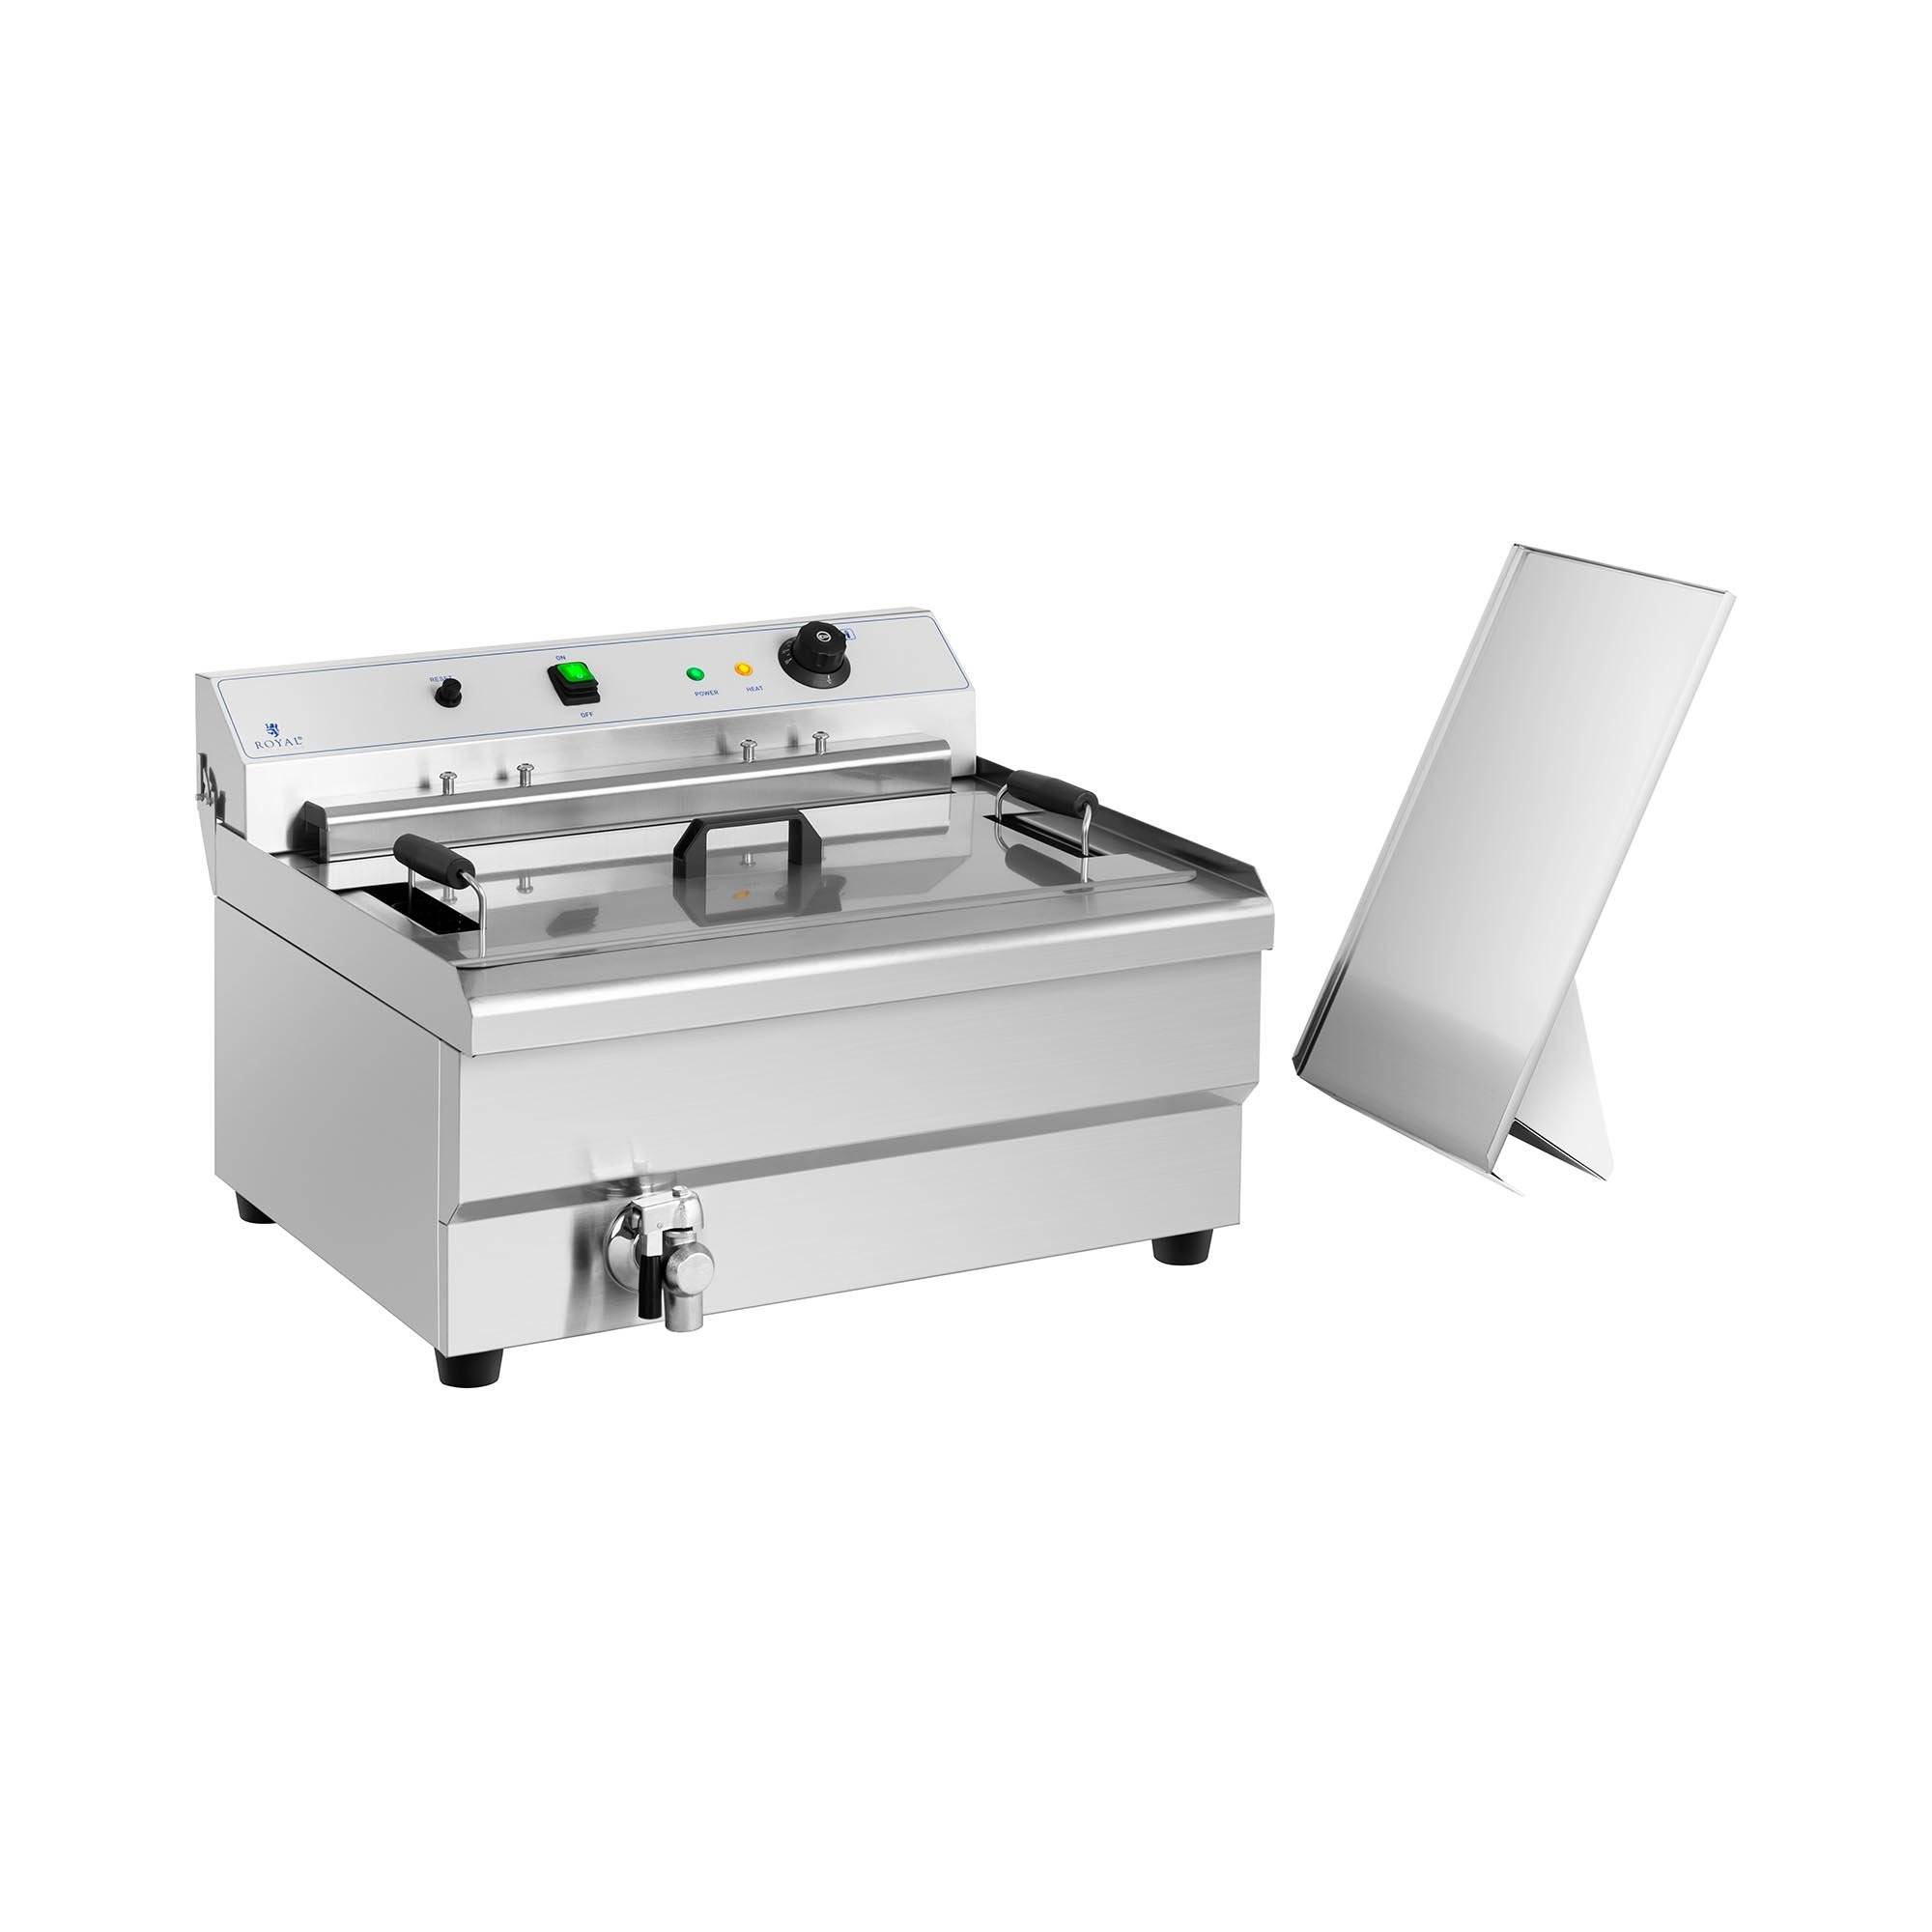 Royal Catering Friteuse à beignets - 30 l - 9 000 W - Zone froide RCBG-30STHB